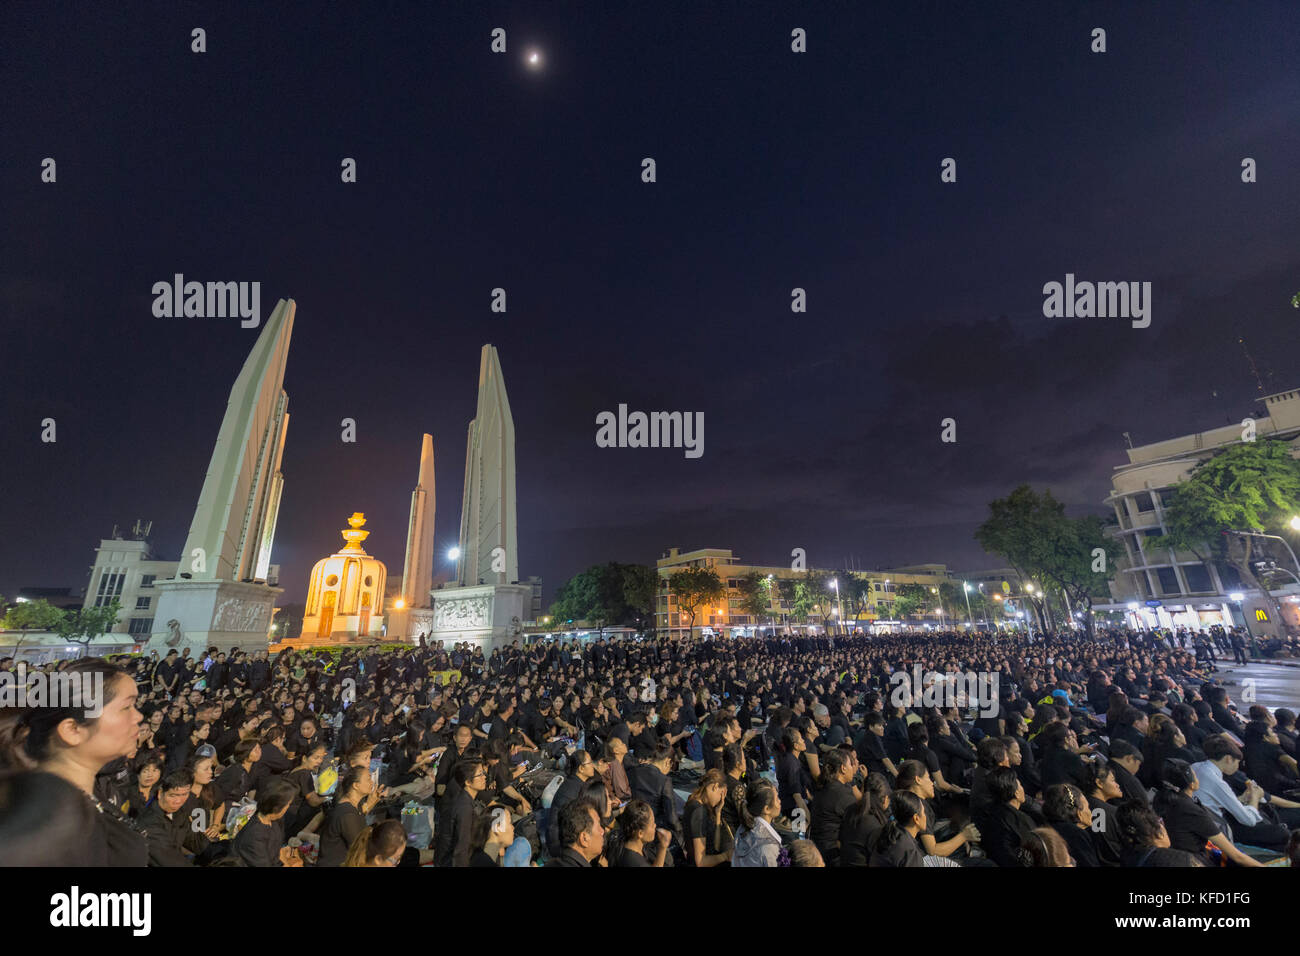 BANGKOK, THAILAND - OCTOBER 26: Unidentified mourners in black sit and watch the royal activities for the cremation of Rama 9, the former king next to Stock Photo